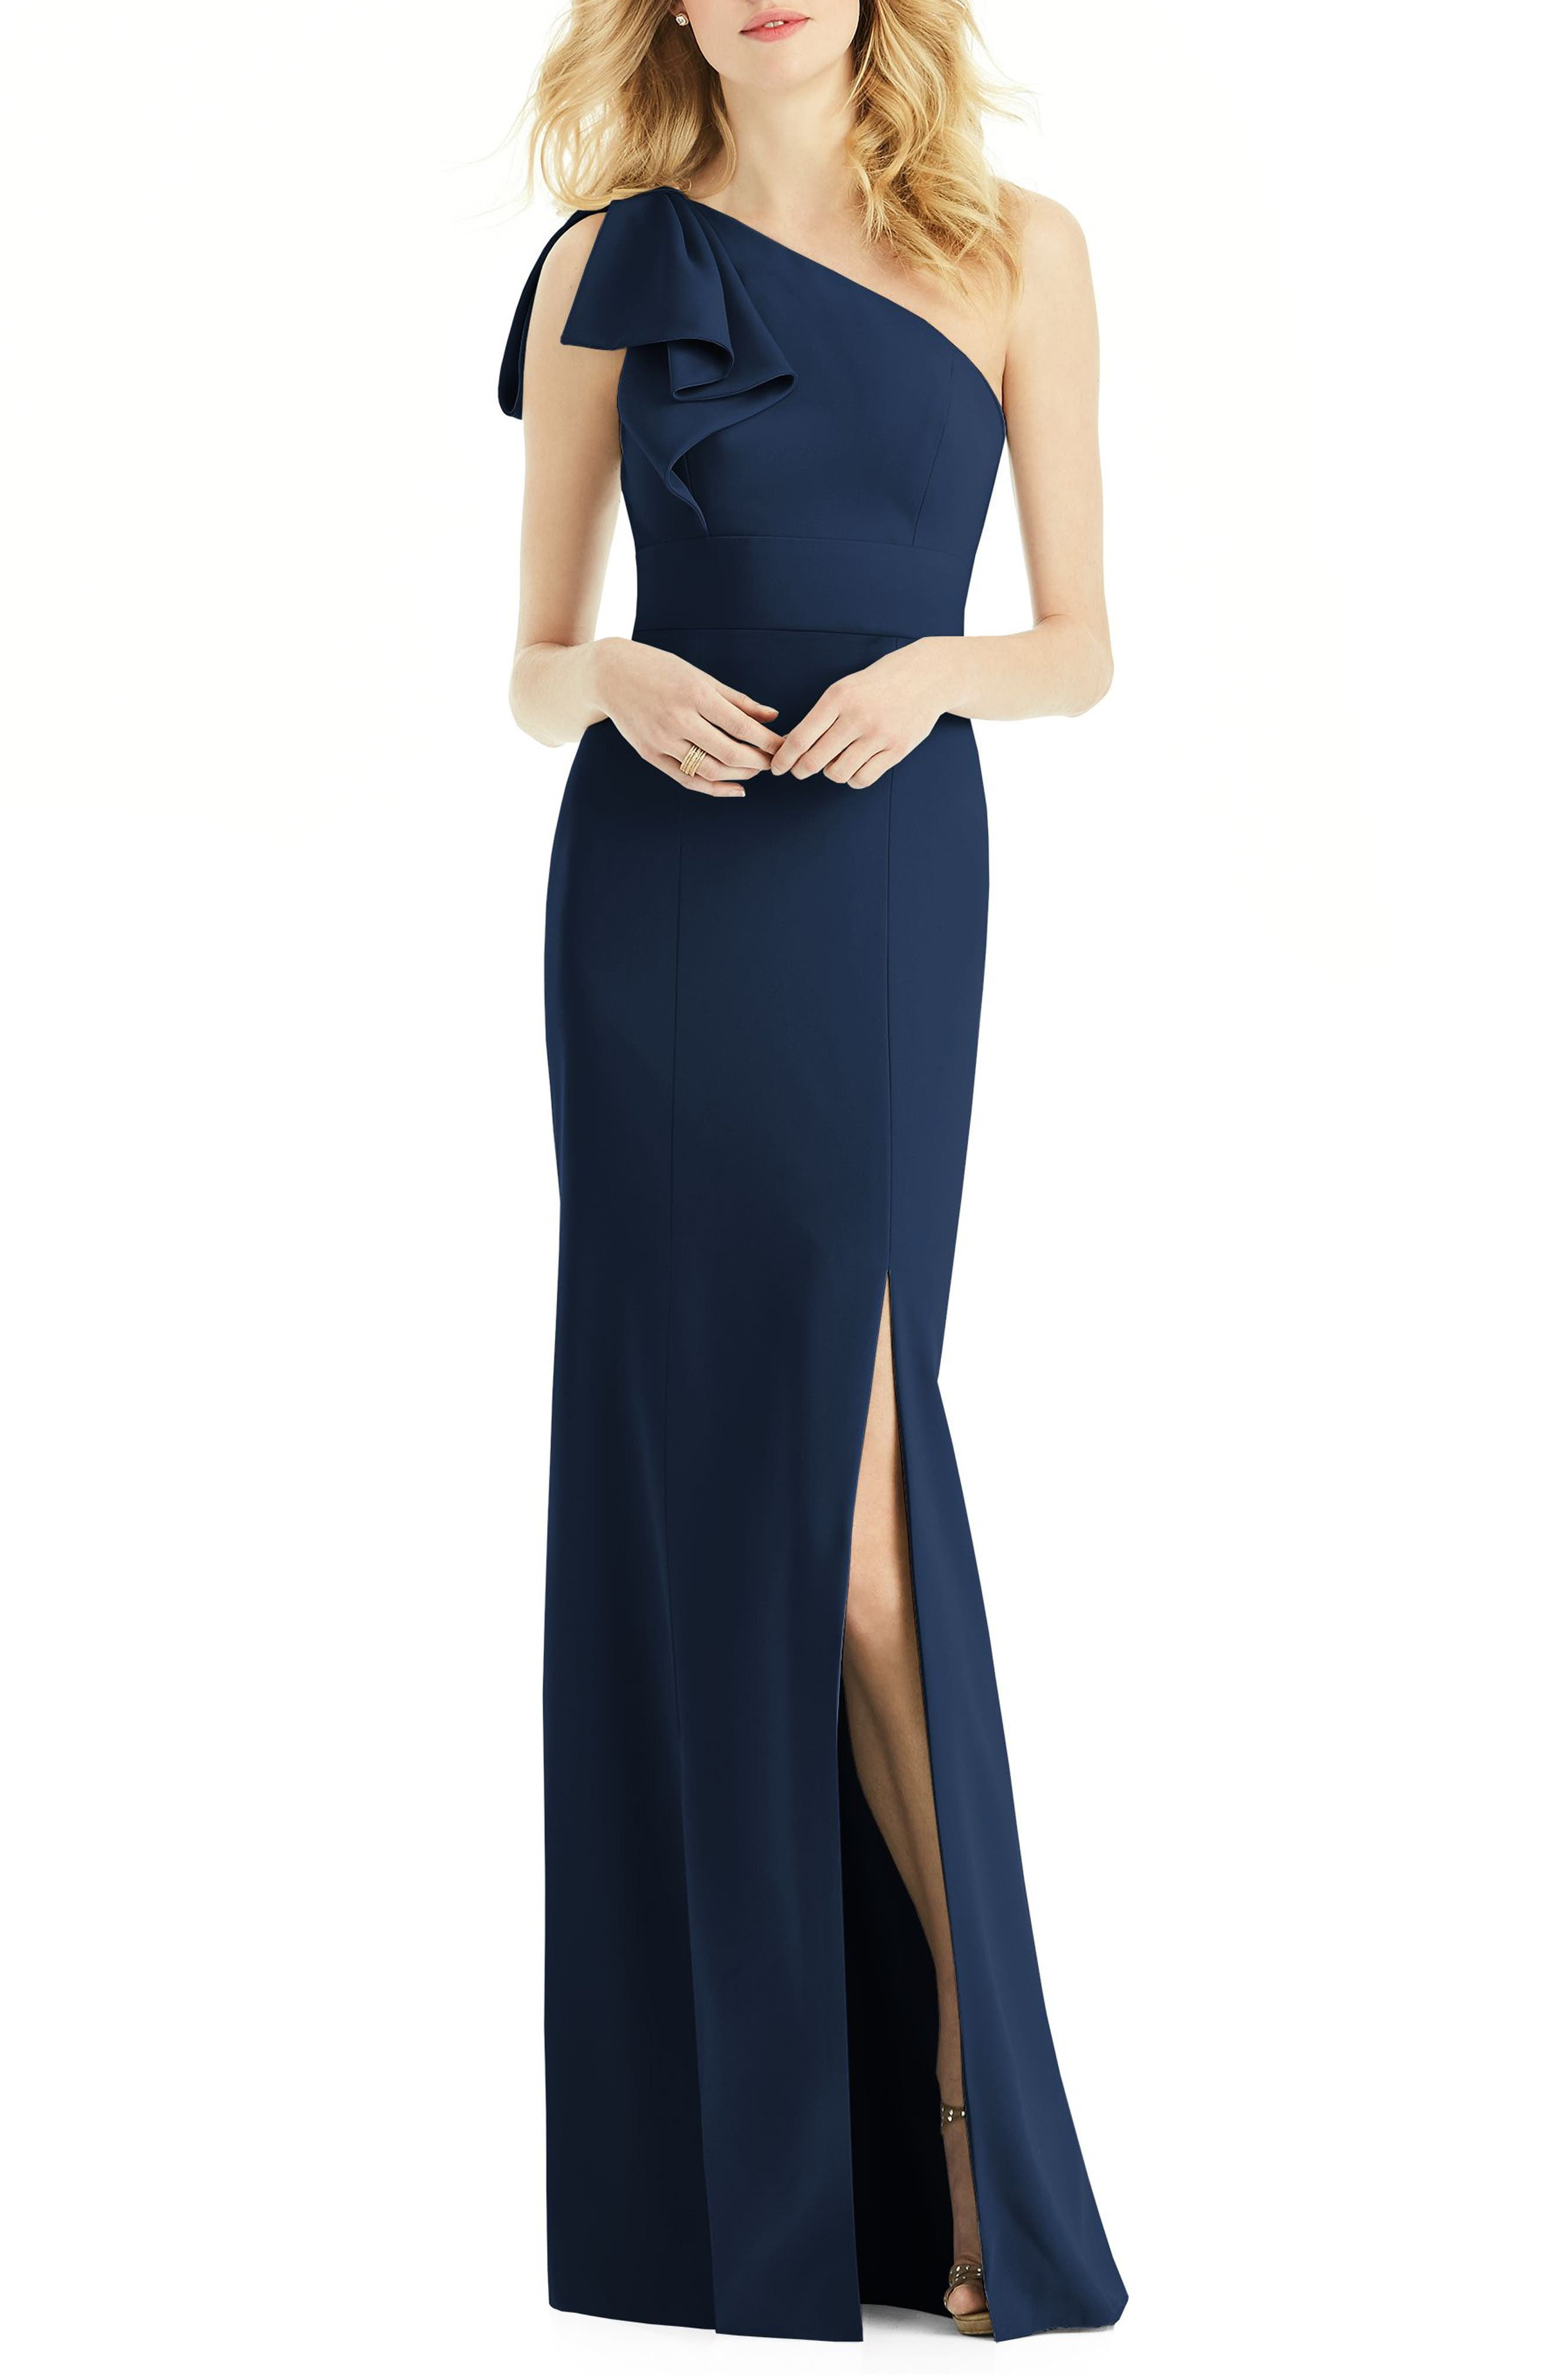 AFTER SIX, Bow One-Shoulder Gown, Main thumbnail 1, color, MIDNIGHT